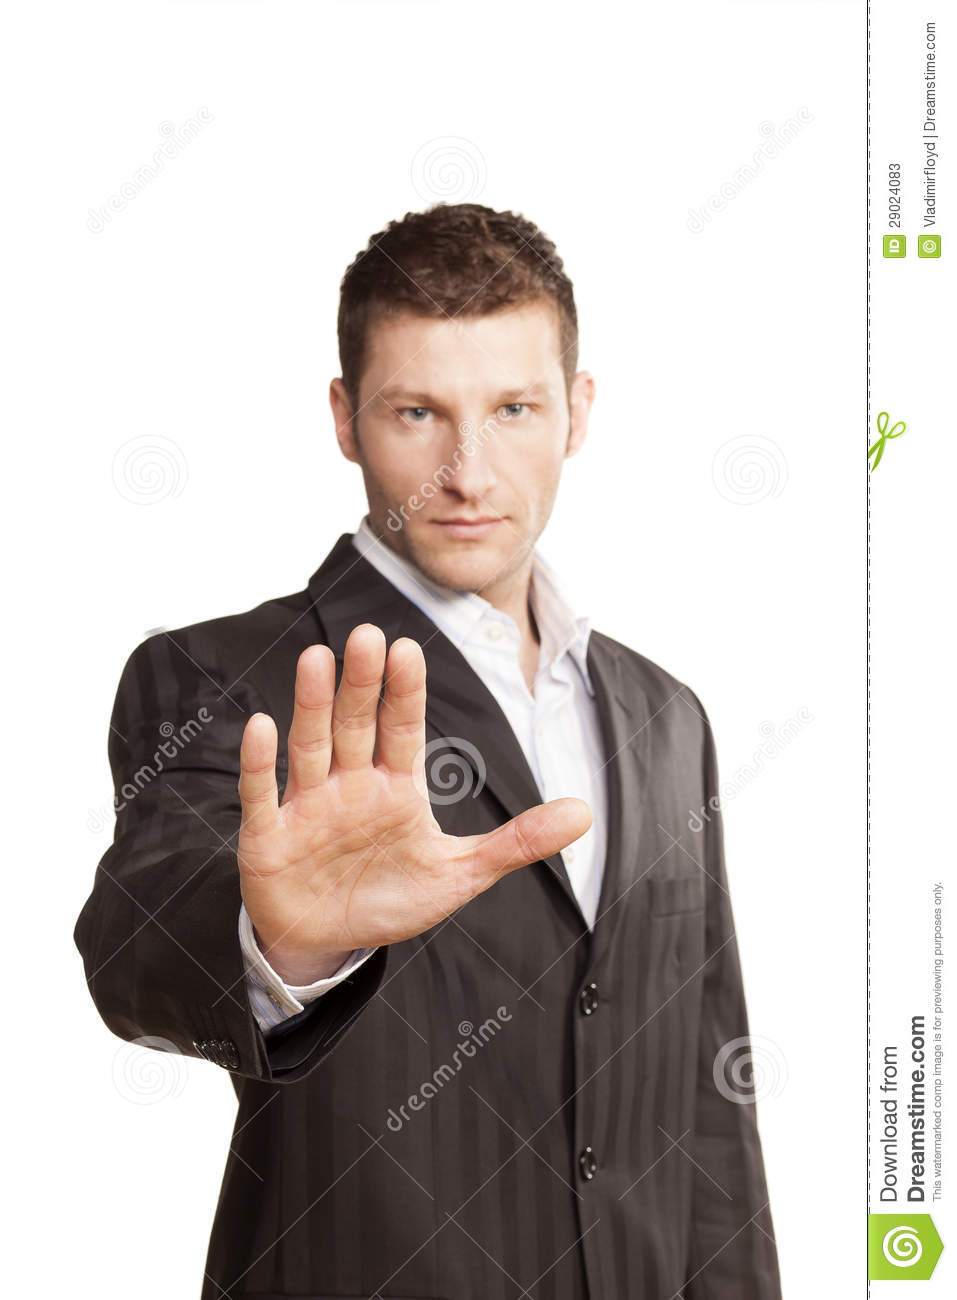 business-man-stop-hand-up-29024083.jpg